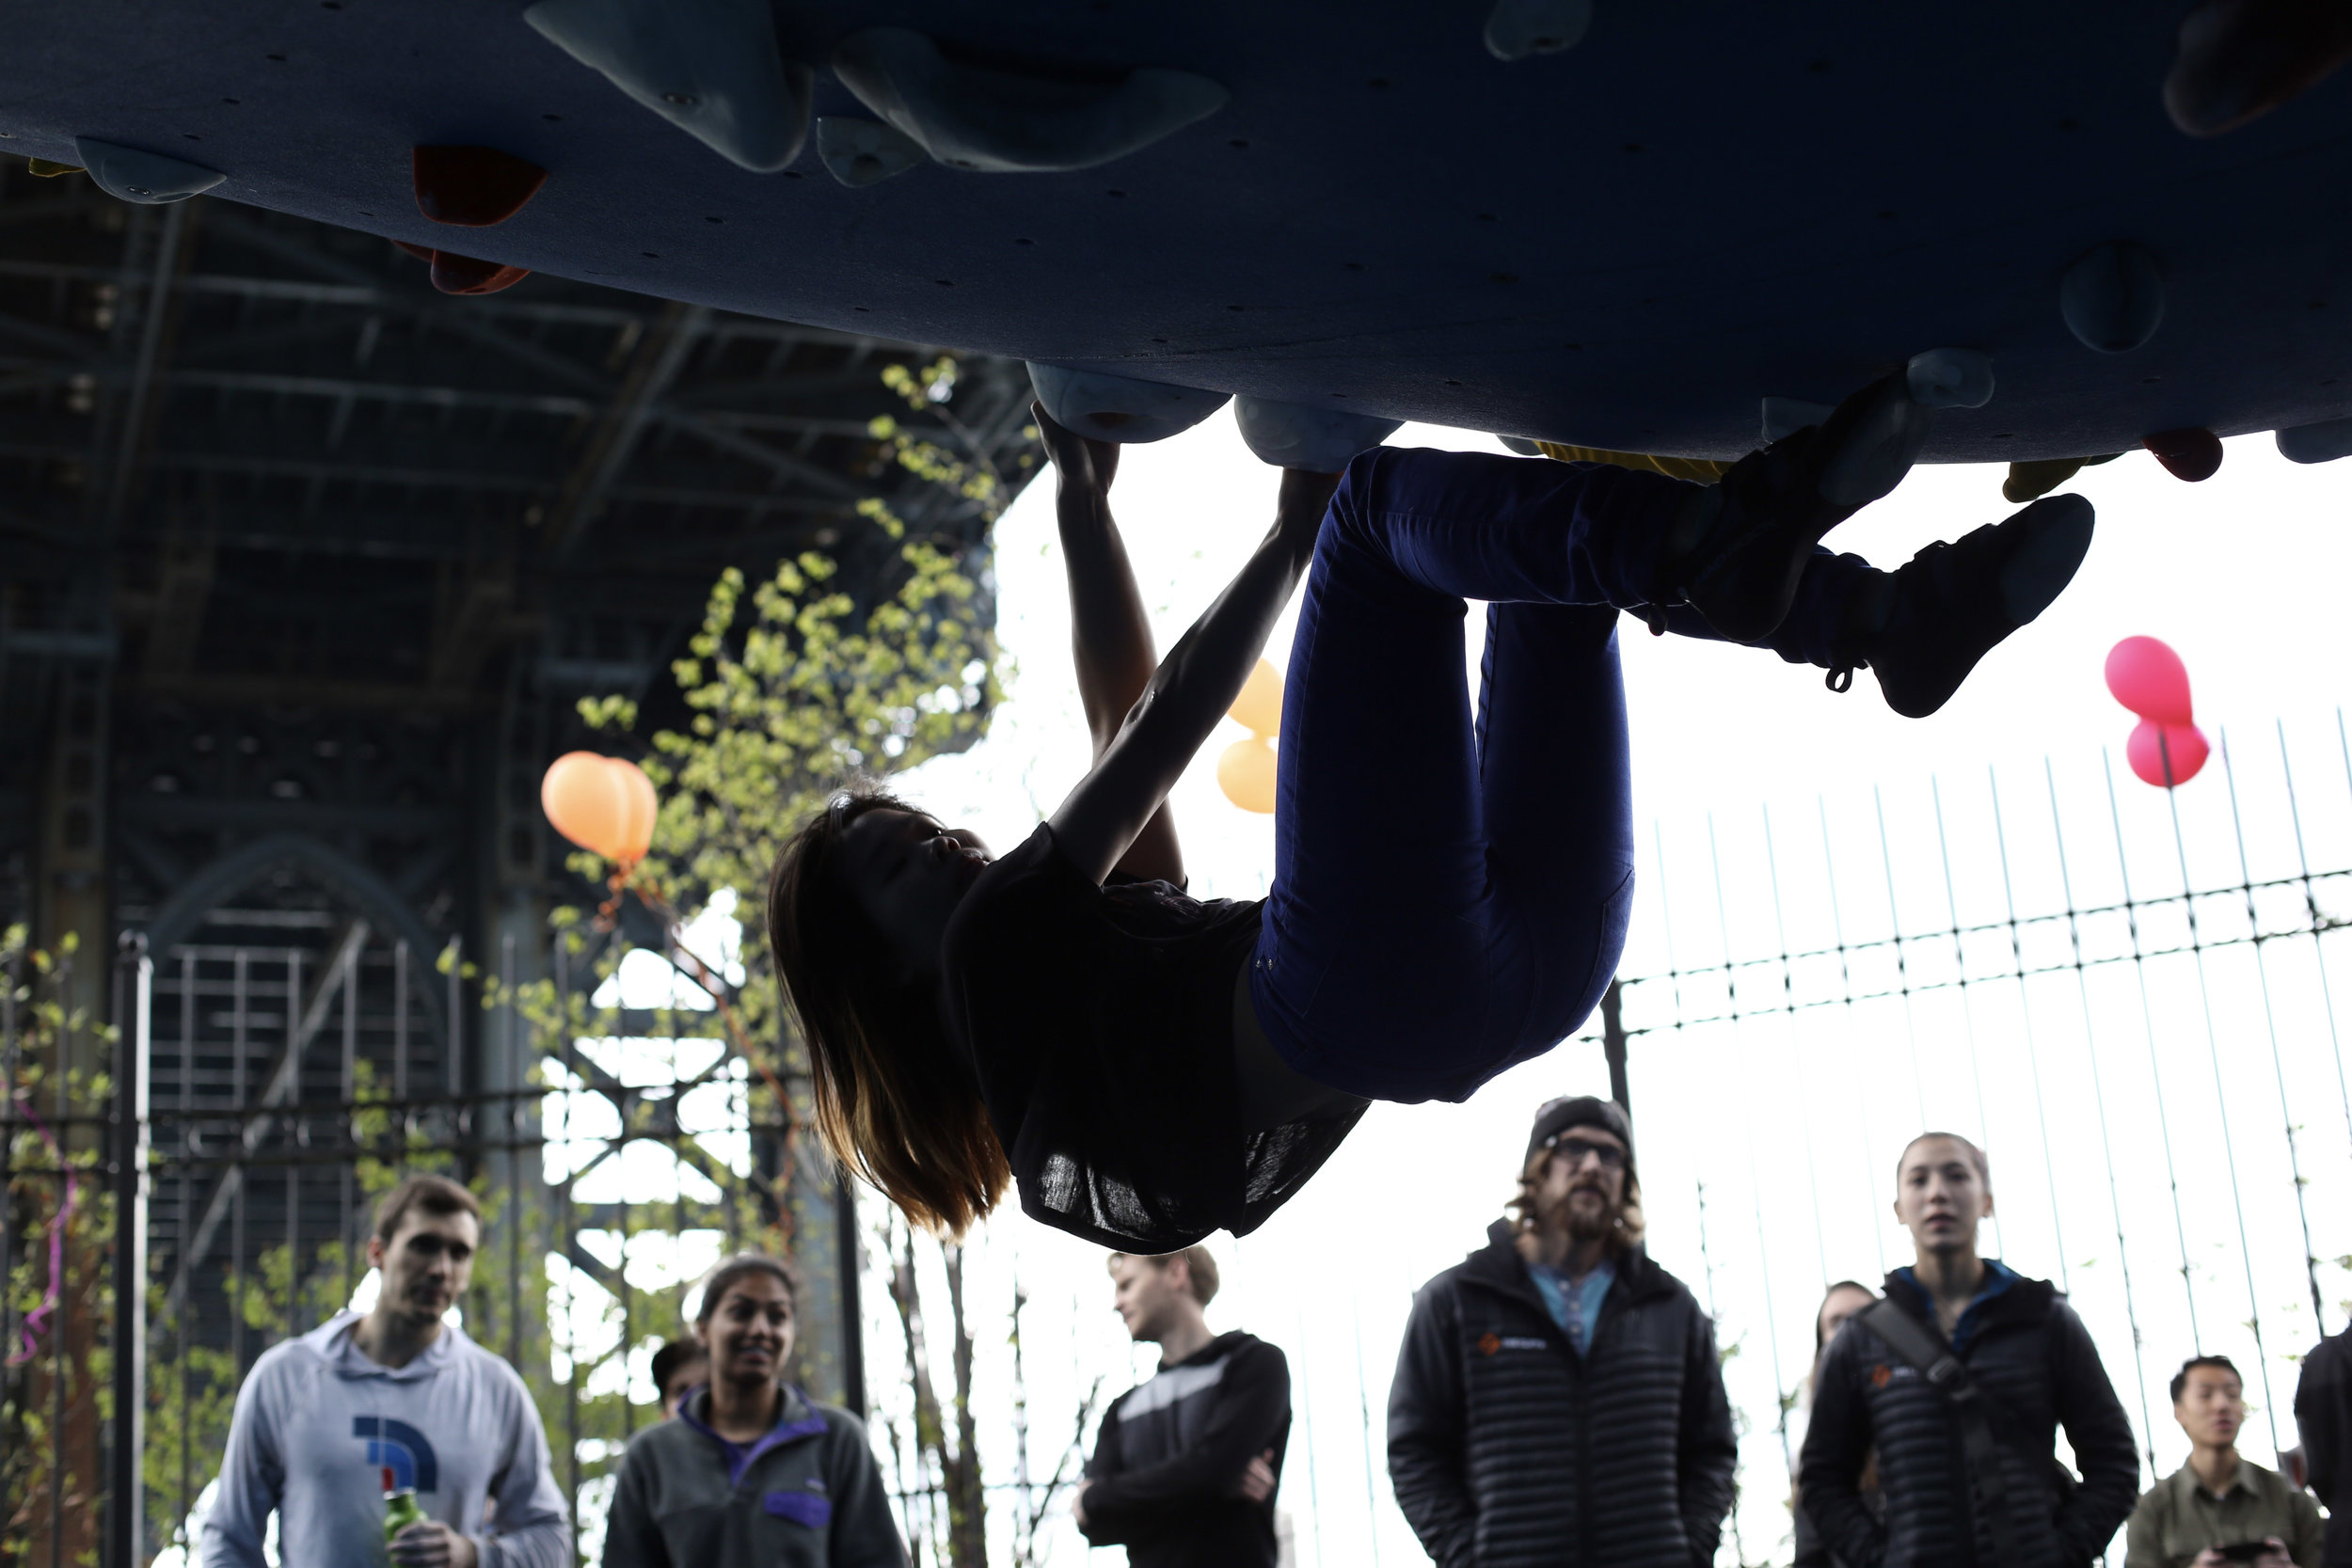 Bouldering - The Cliffs at DUMBO offers bouldering, a type of rock climbing that is focused on movement and requires no experience, rope, or partner! The biggest challenge is not getting hooked. Check out our Learn to Crush clinic to get an intro.